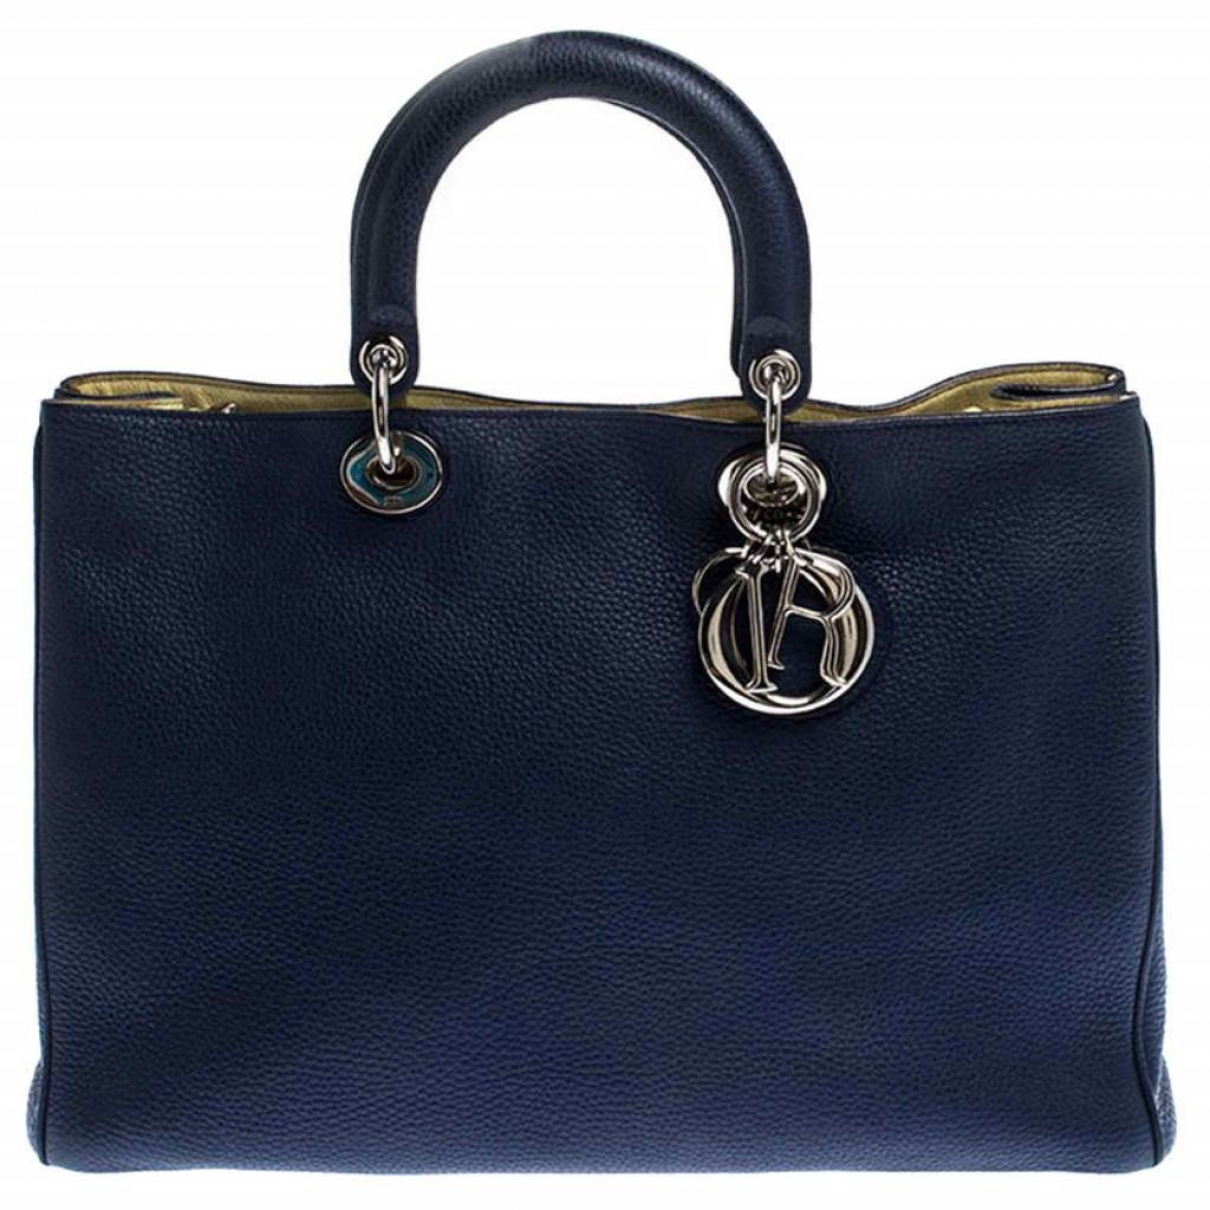 Dior Diorissimo Blue Leather handbag for Women \N